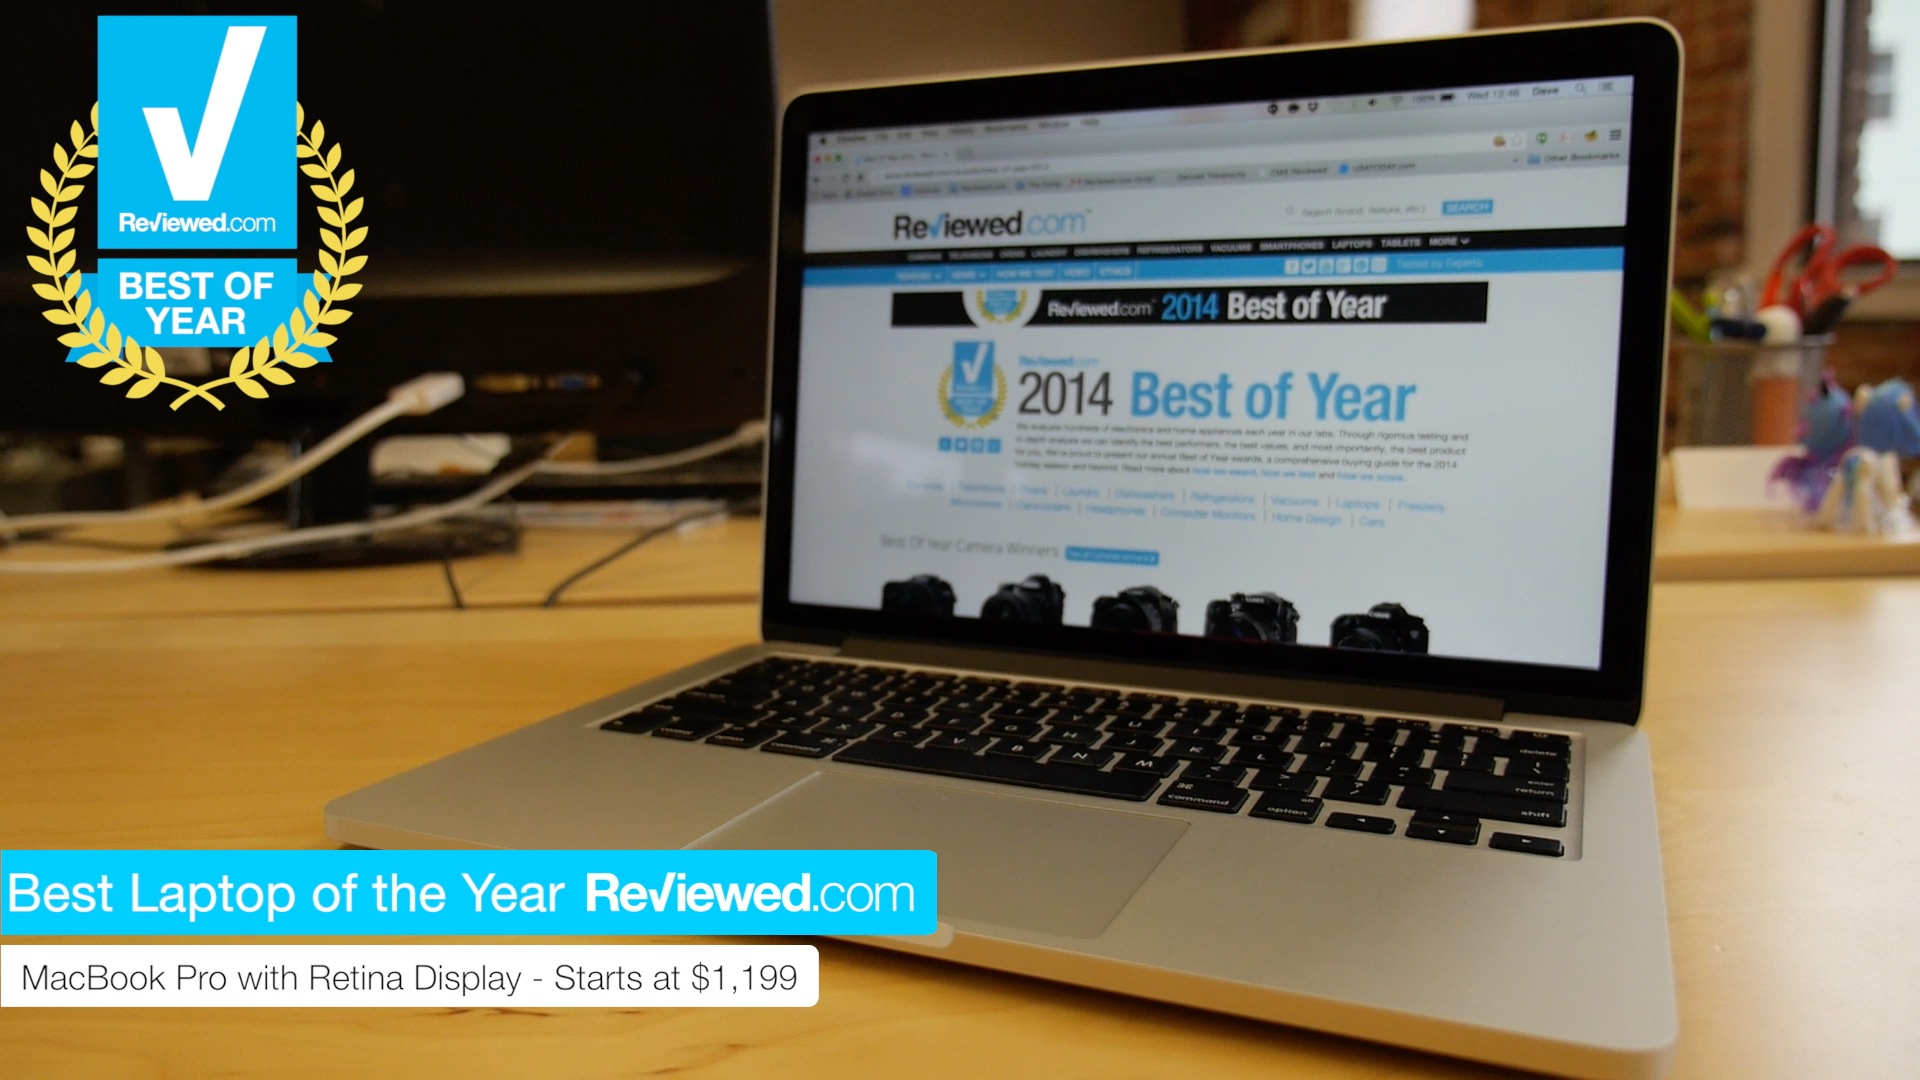 1242911077001 3900198252001 best laptops of 2014 still2